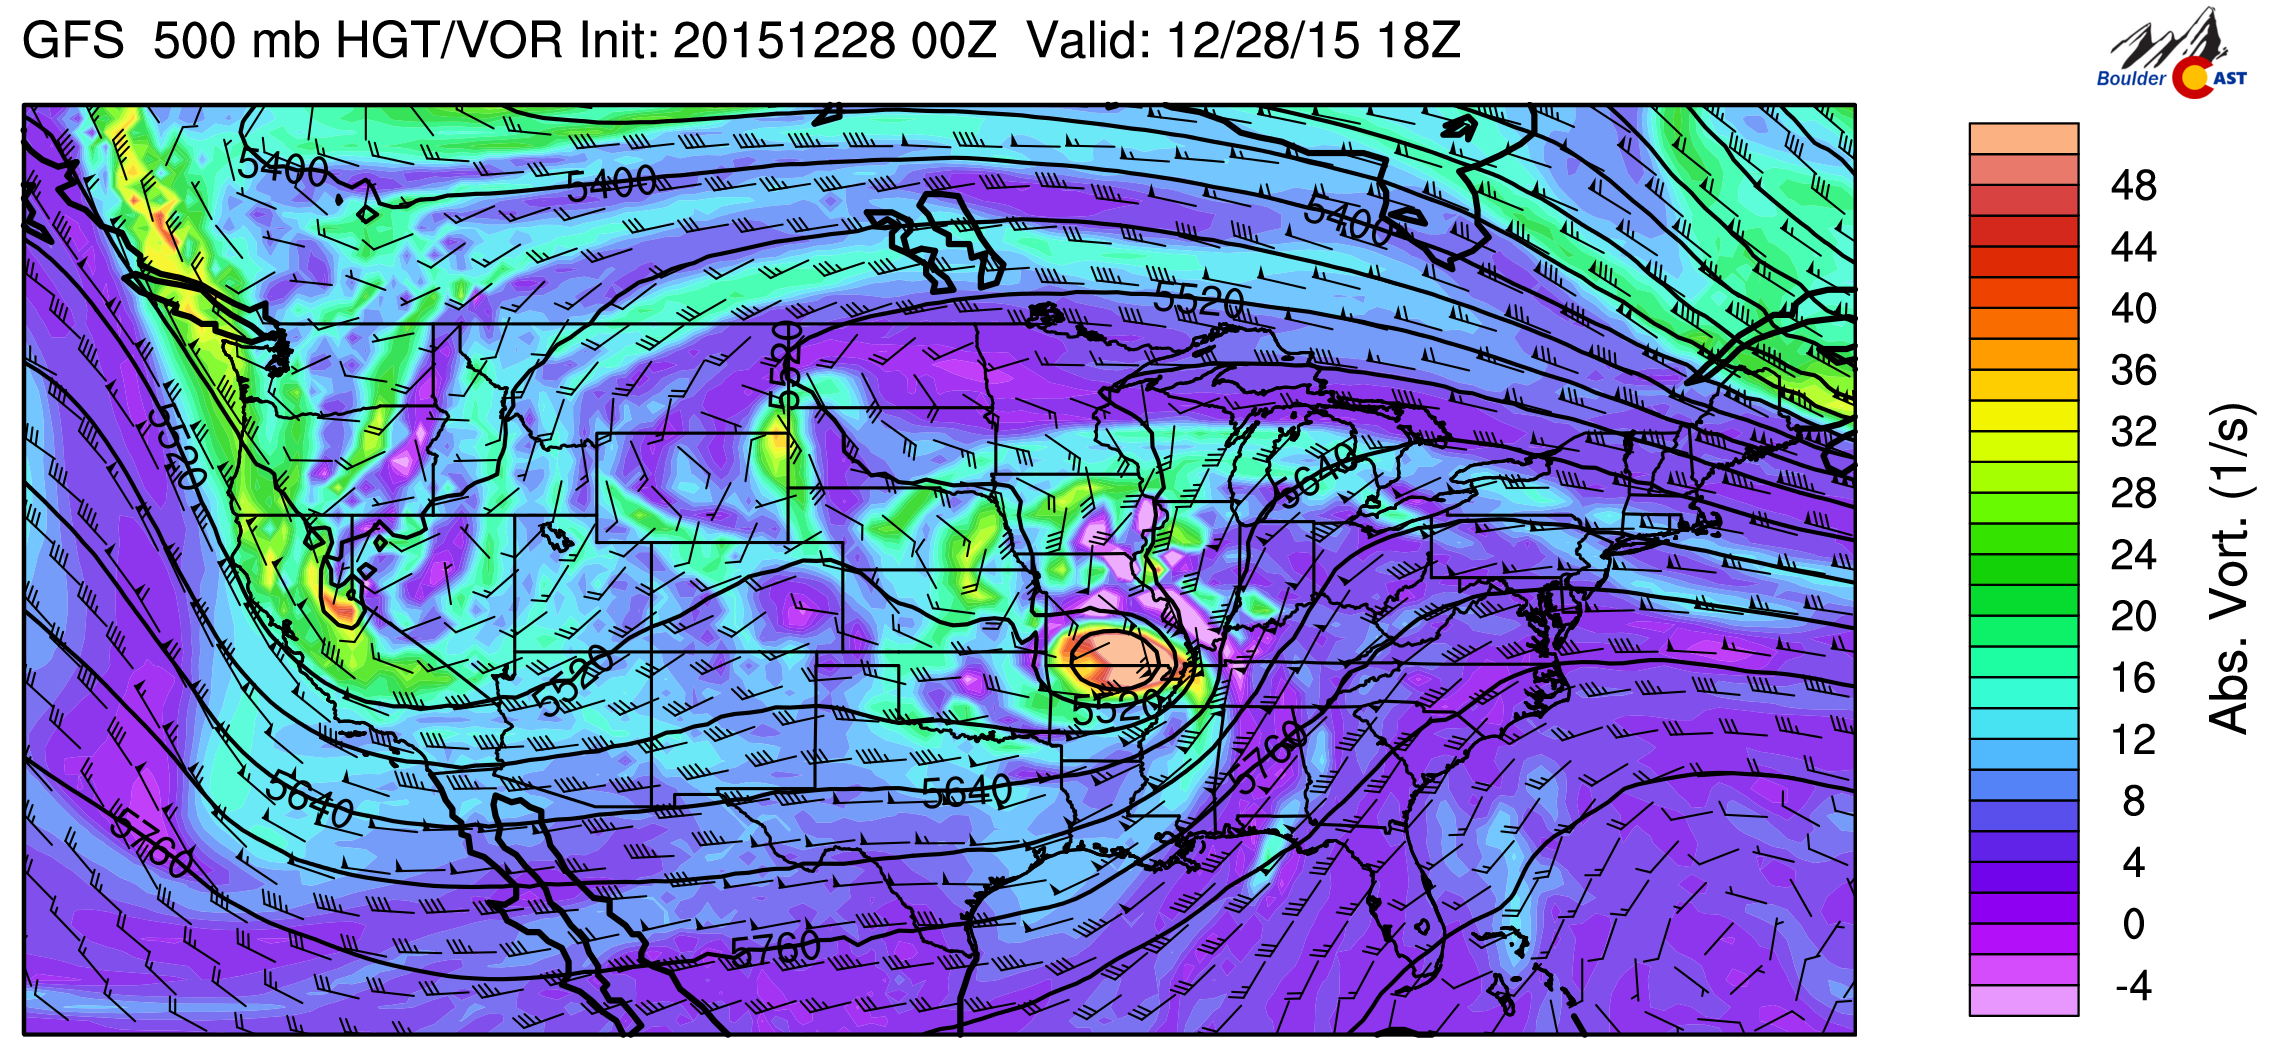 GFS 500mb vorticity map, valid Monday afternoon. Colorado is within the grip of the large scale trough, but between individual pulses of energy.